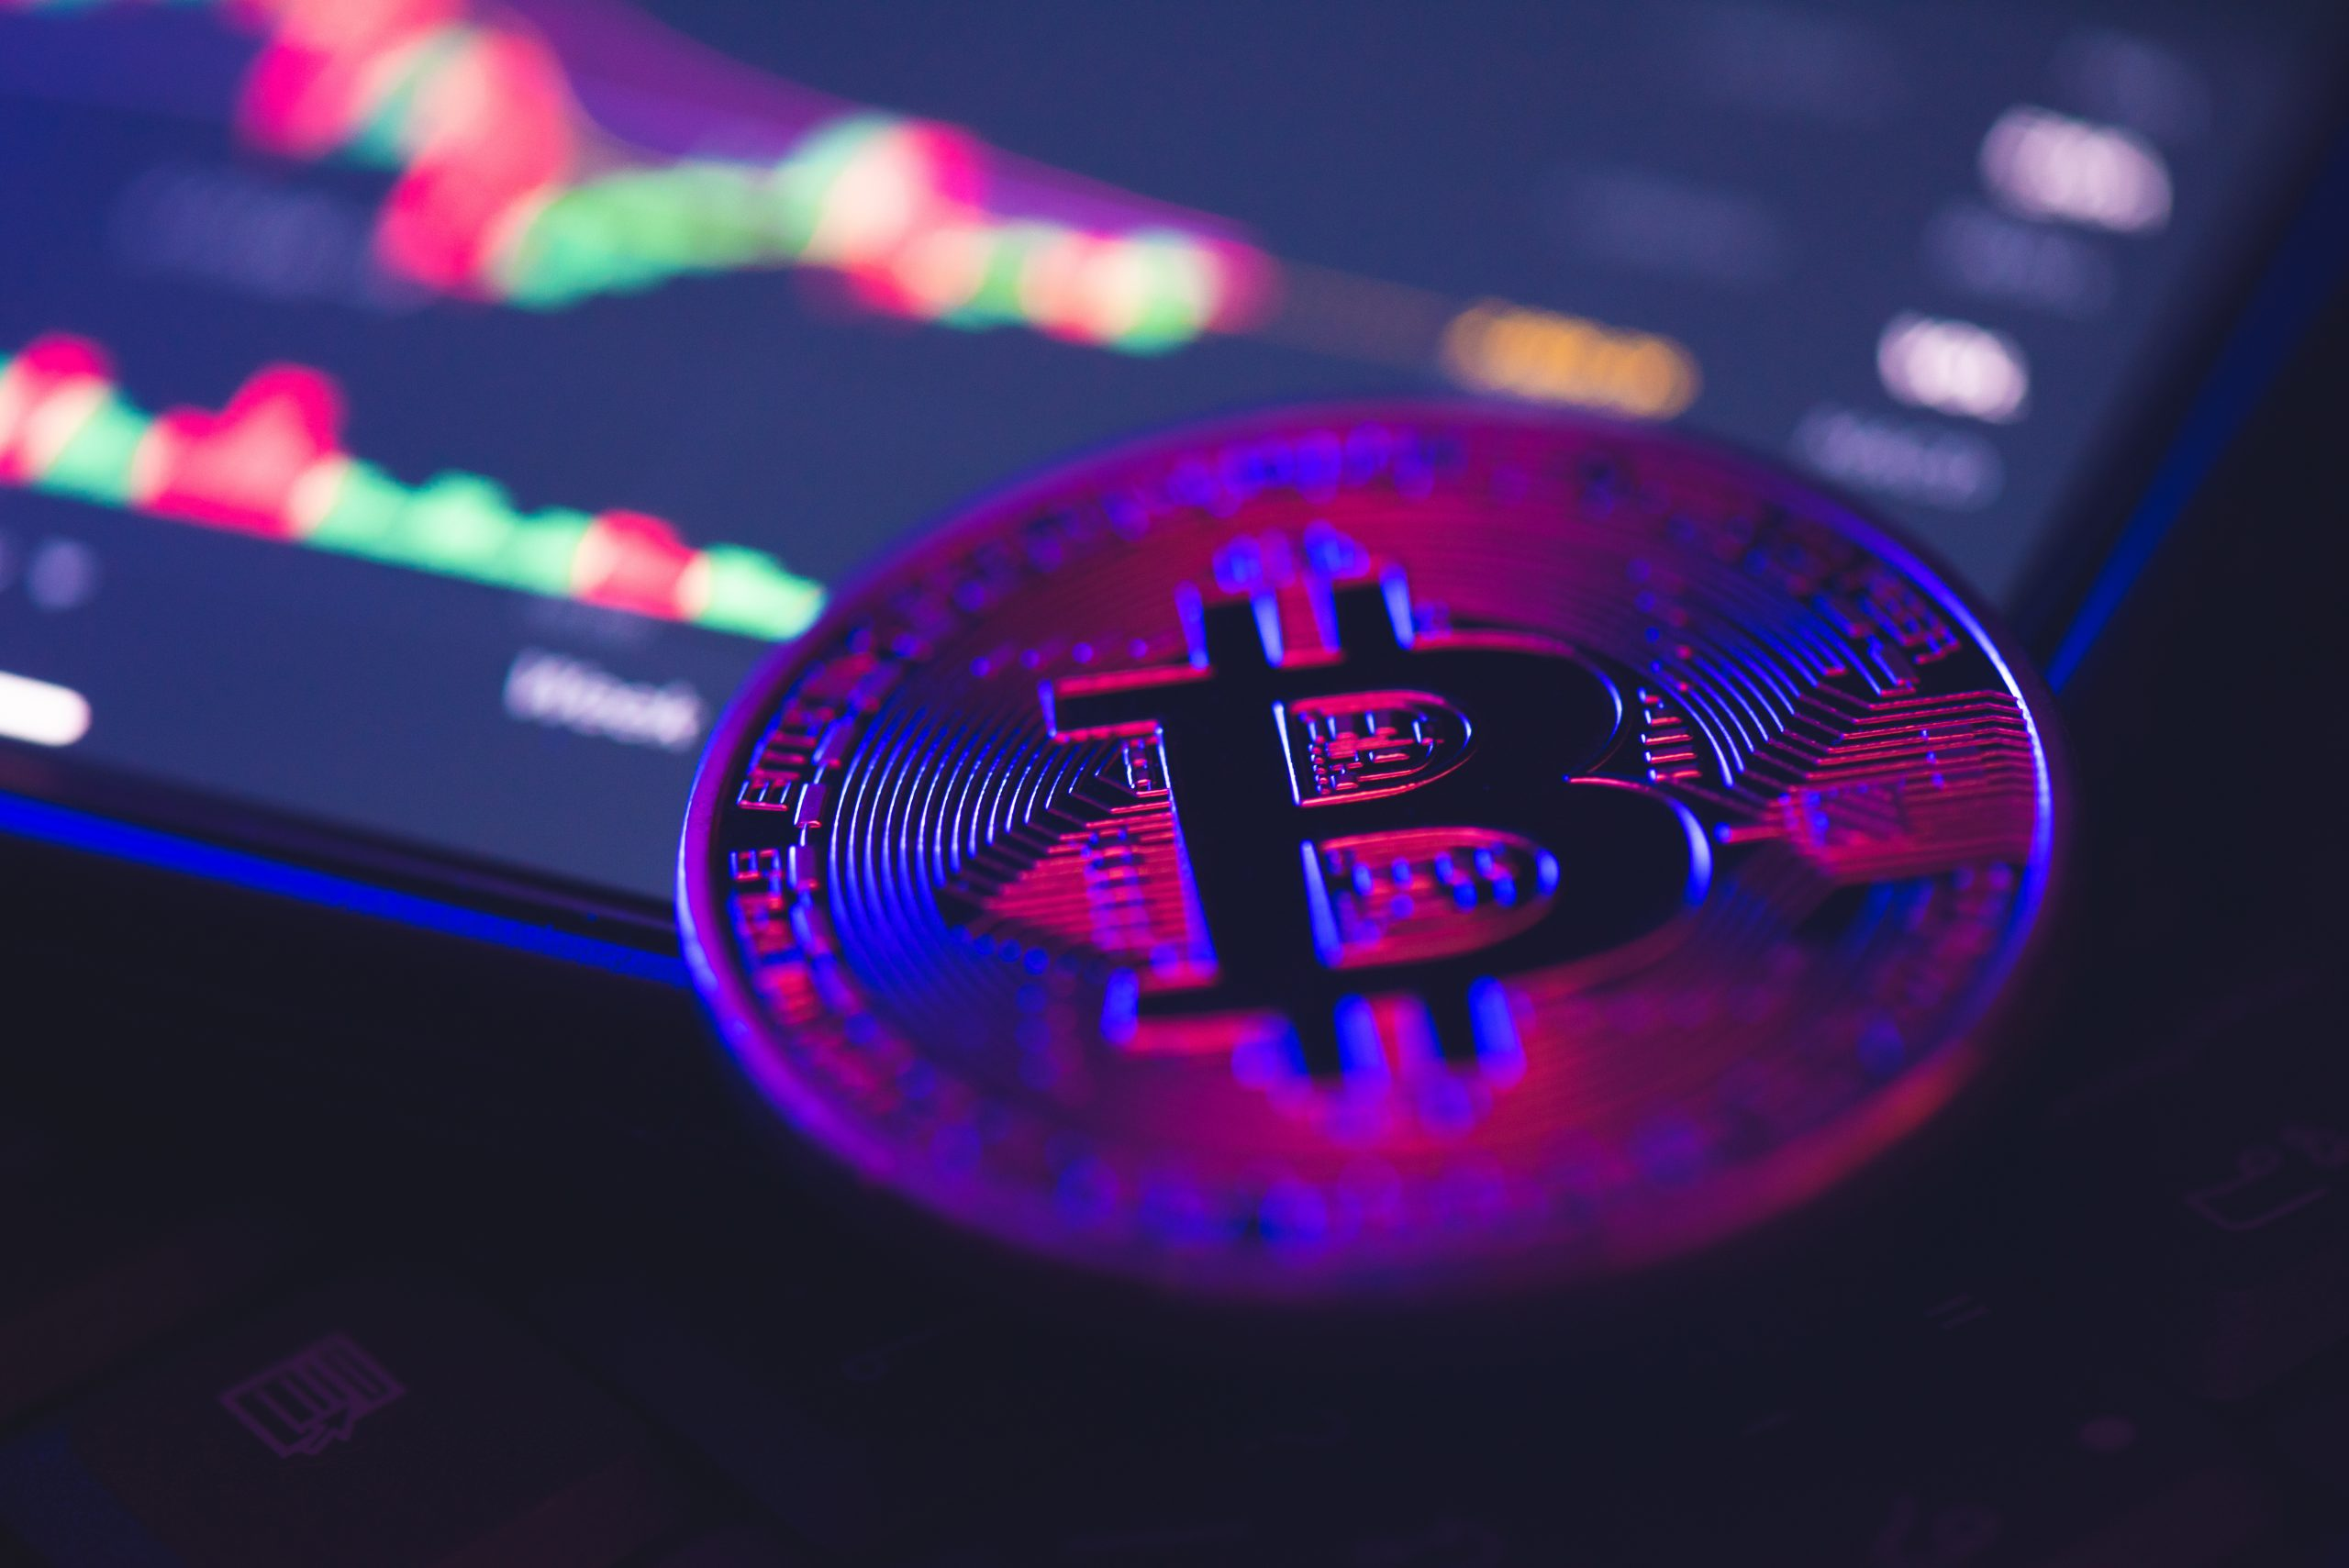 Bitcoin price now can be changed by